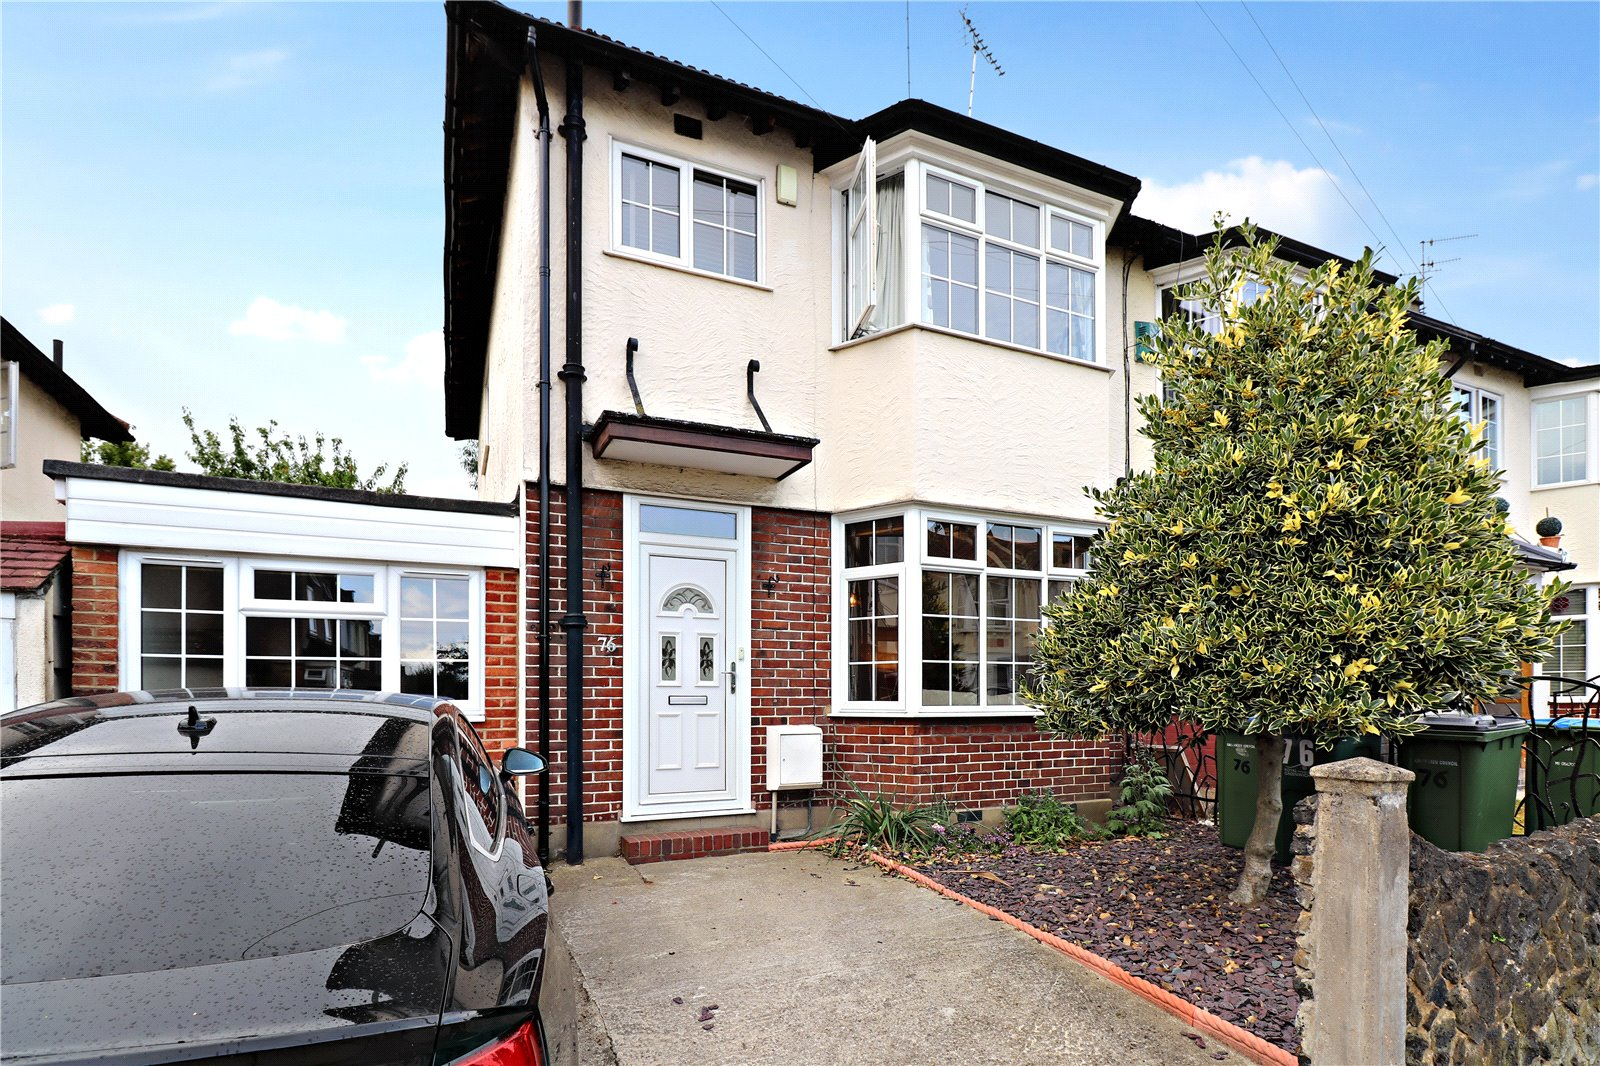 Federation Road, Abbey Wood, SE2